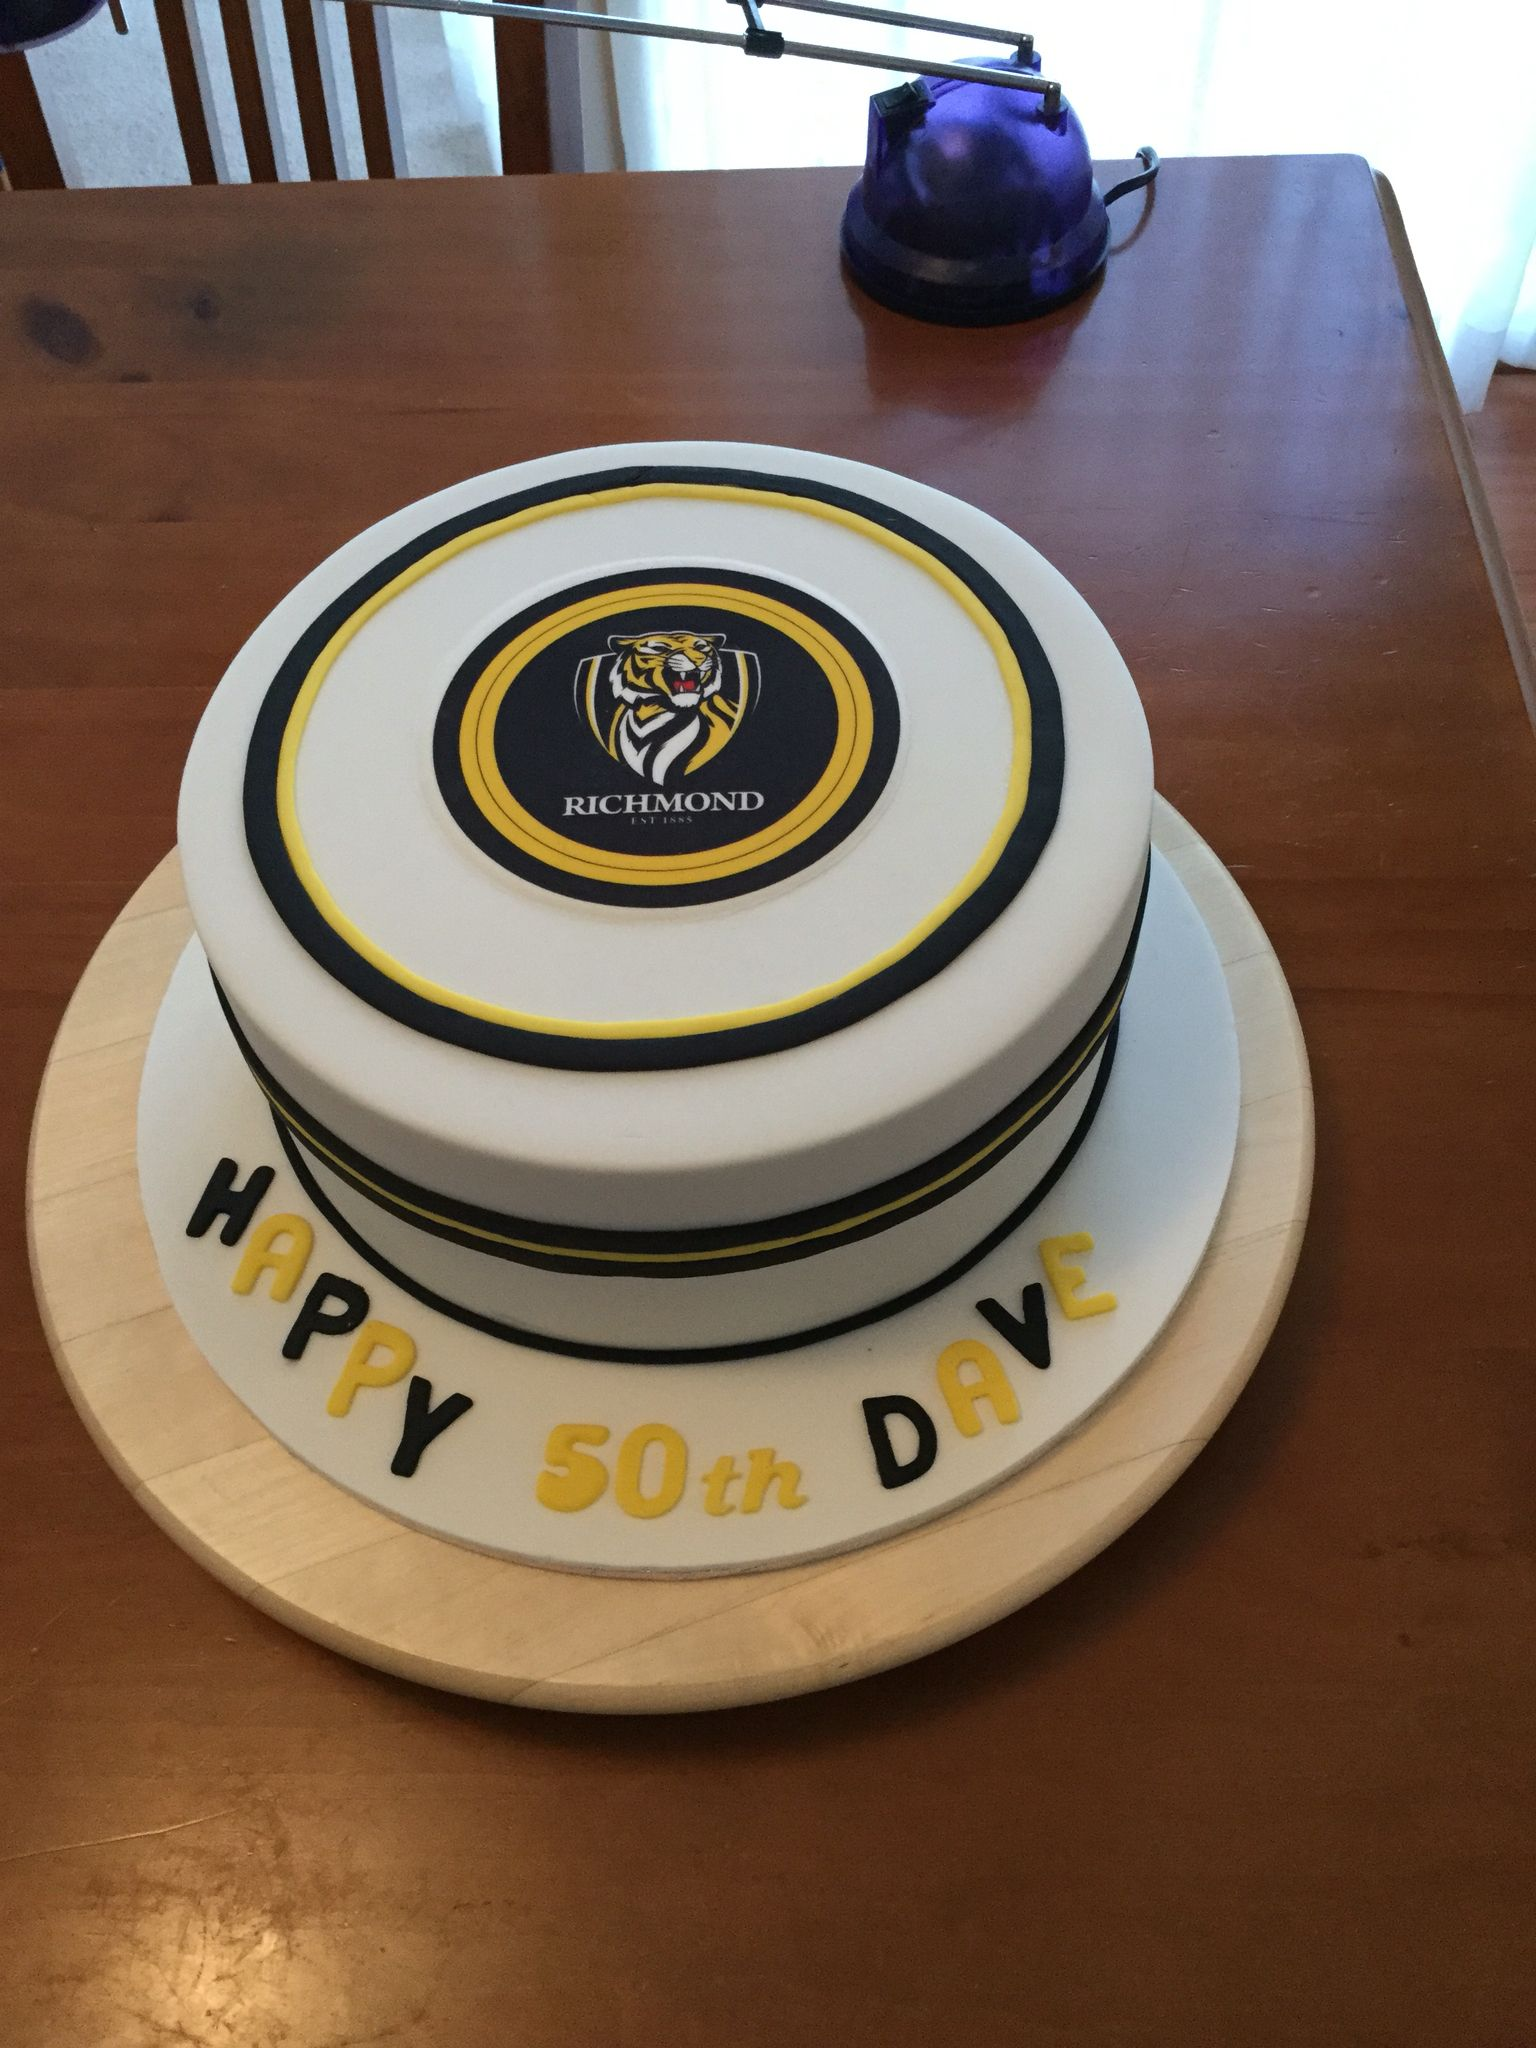 Richmond Football Cake 50th Birthday Chocolate Mud With Caramel Italian Meringue Ercream